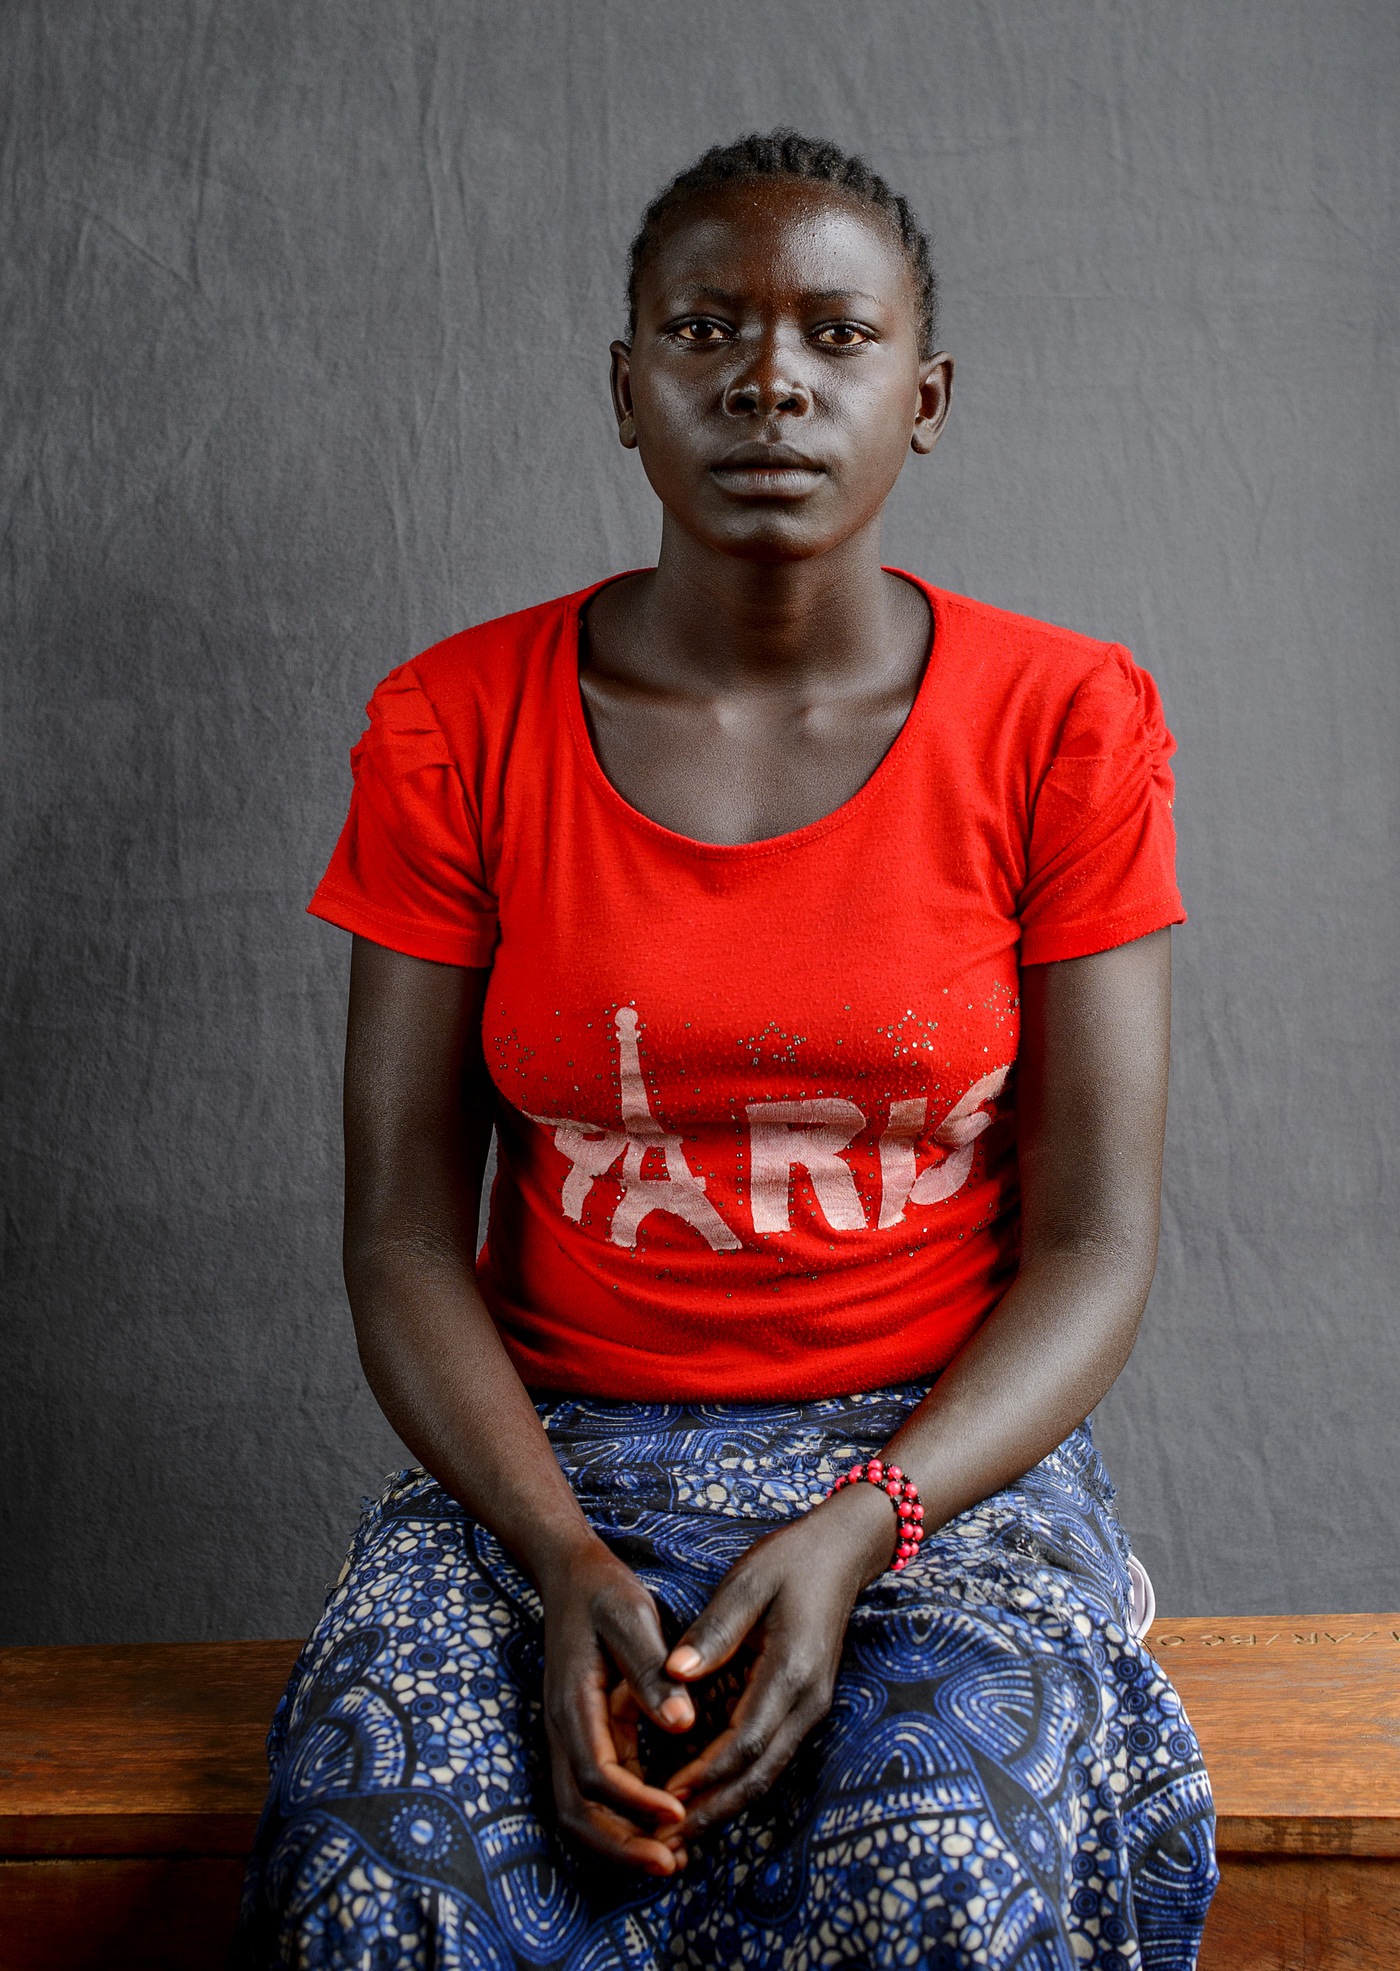 John T. Pedersen Photography - Florence Awate (18)   My husband was slaughtered by the government soldiers outside the house of my family. I witnessed it myself.   Then two soldiers raped me    I escaped afterwards. I will never return to South Sudan. My hope is to start studying here in Uganda.   Florence walked seven days with her one child from the village of Yei.